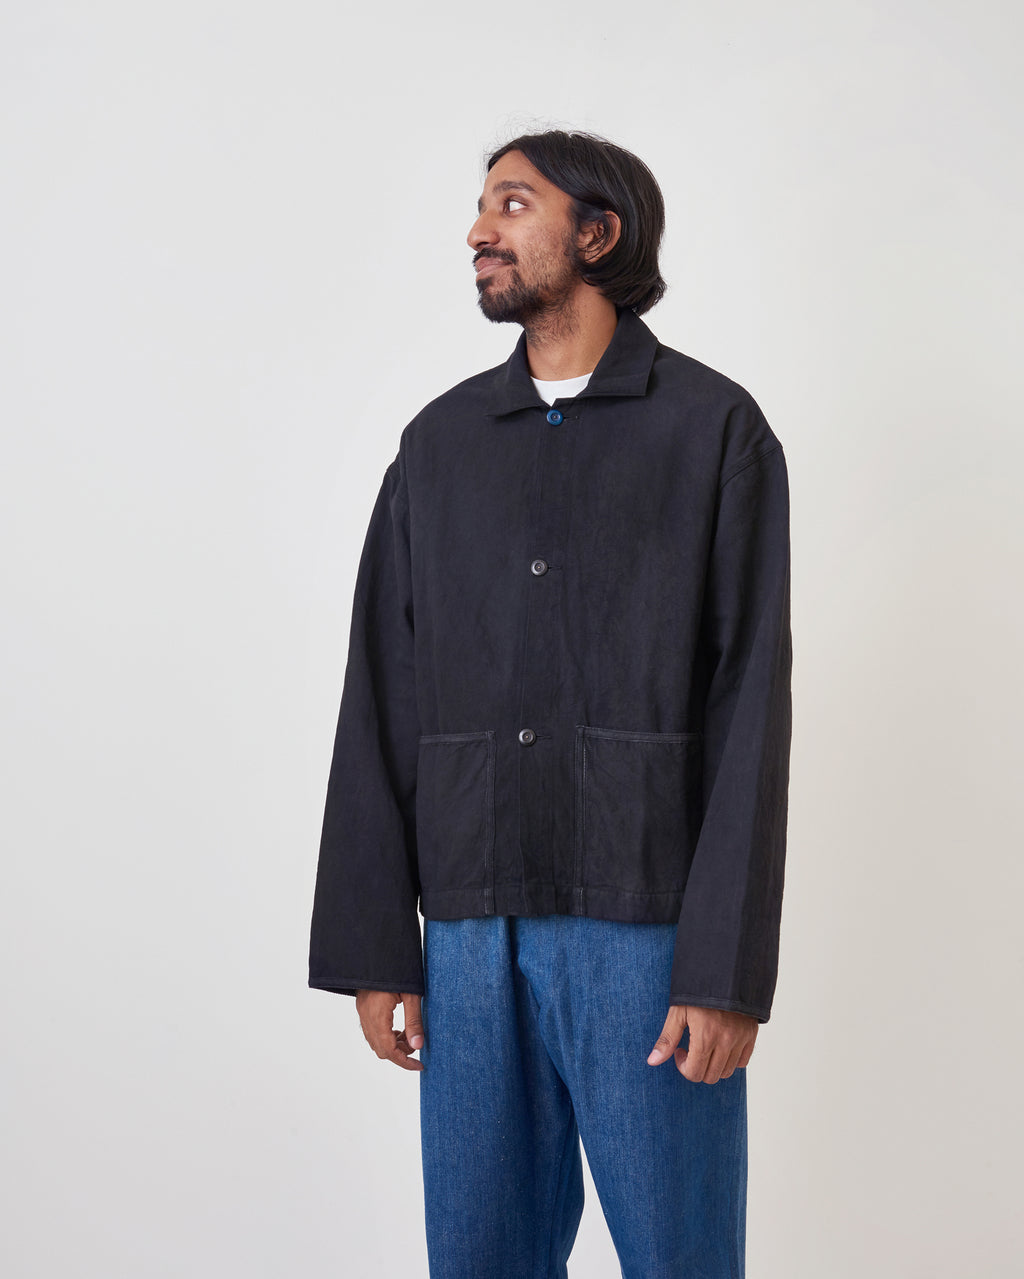 Short-on-Time Canvas Jacket